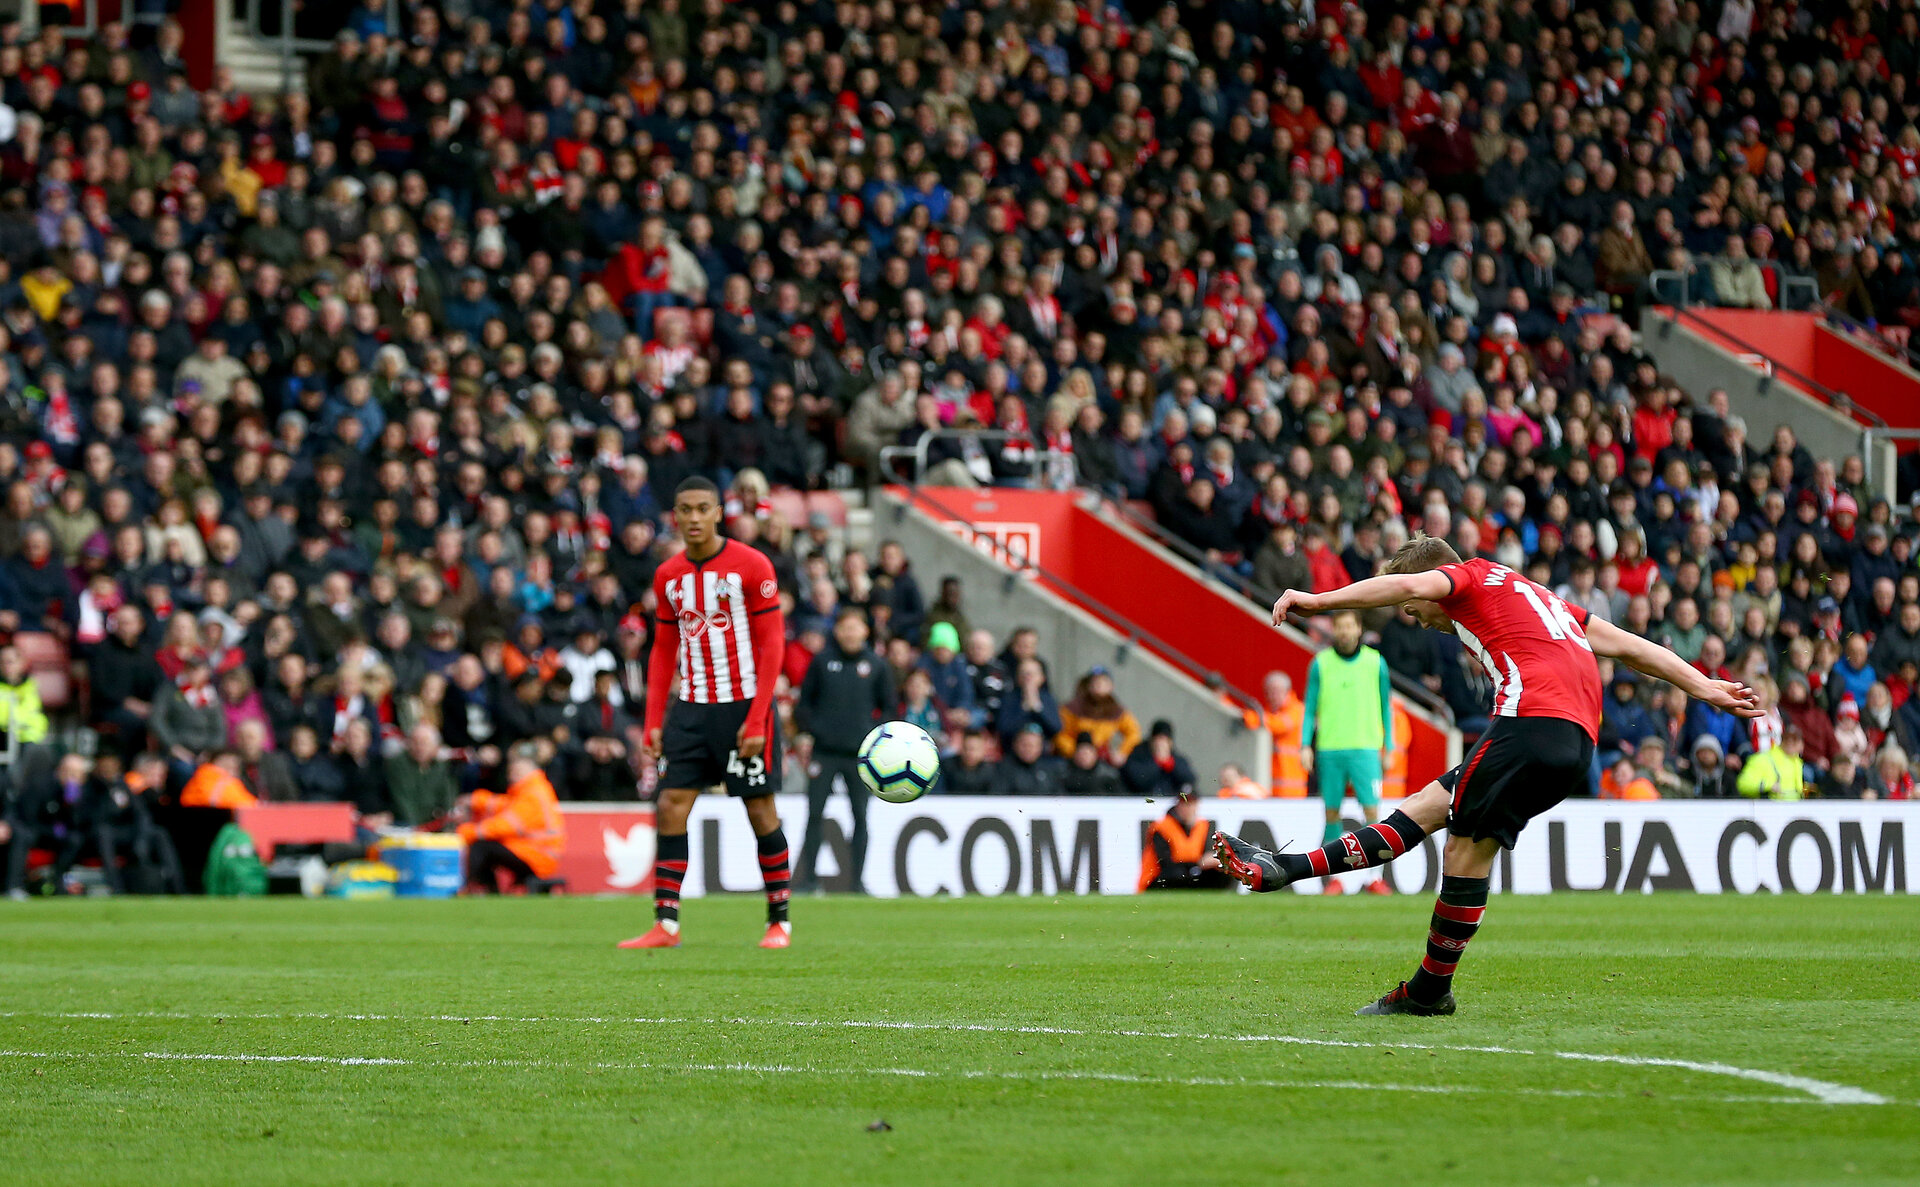 SOUTHAMPTON, ENGLAND - MARCH 09: James Ward-Prowse of Southampton scores from a free kick during the Premier League match between Southampton FC and Tottenham Hotspur at St Mary's Stadium on March 09, 2019 in Southampton, United Kingdom. (Photo by Matt Watson/Southampton FC via Getty Images)